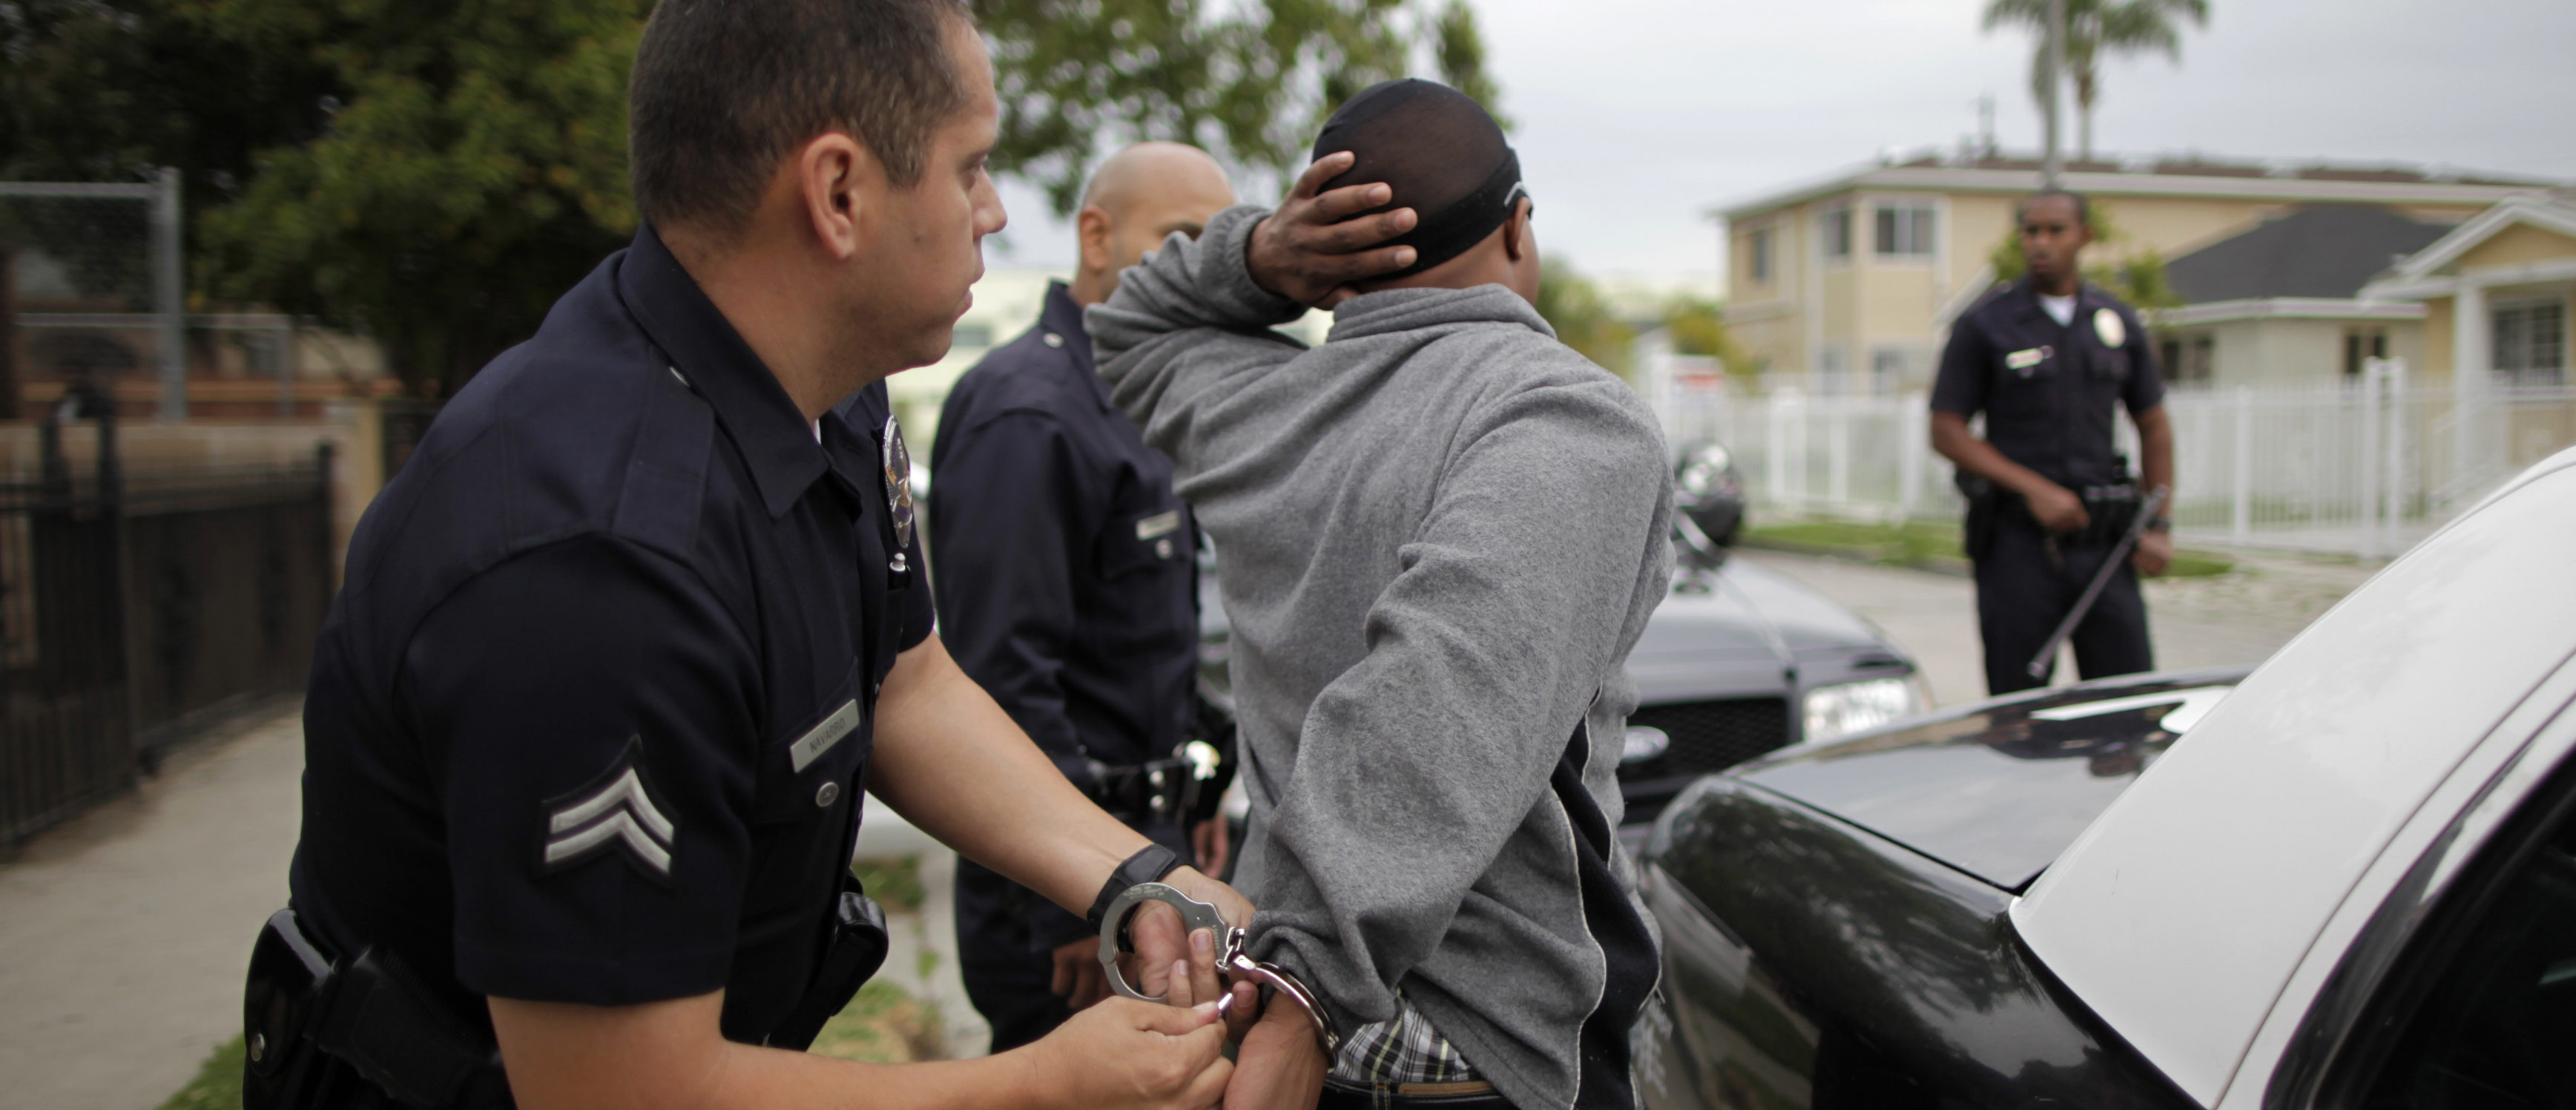 A man is handcuffed in south Los Angeles, California, April 25, 2012. This April 29 will mark the 20th anniversary of the Los Angeles Riots following the acquittal of four Los Angeles police officers in the videotaped beating of motorist Rodney King. The 77th division of south Los Angeles, where the riots began, is an 11.2 square mile area. It has seen a drop from 162 homicides 20 years ago, to 16 so far this year. There are around 34 gangs operating in the division. REUTERS/Lucy Nicholson